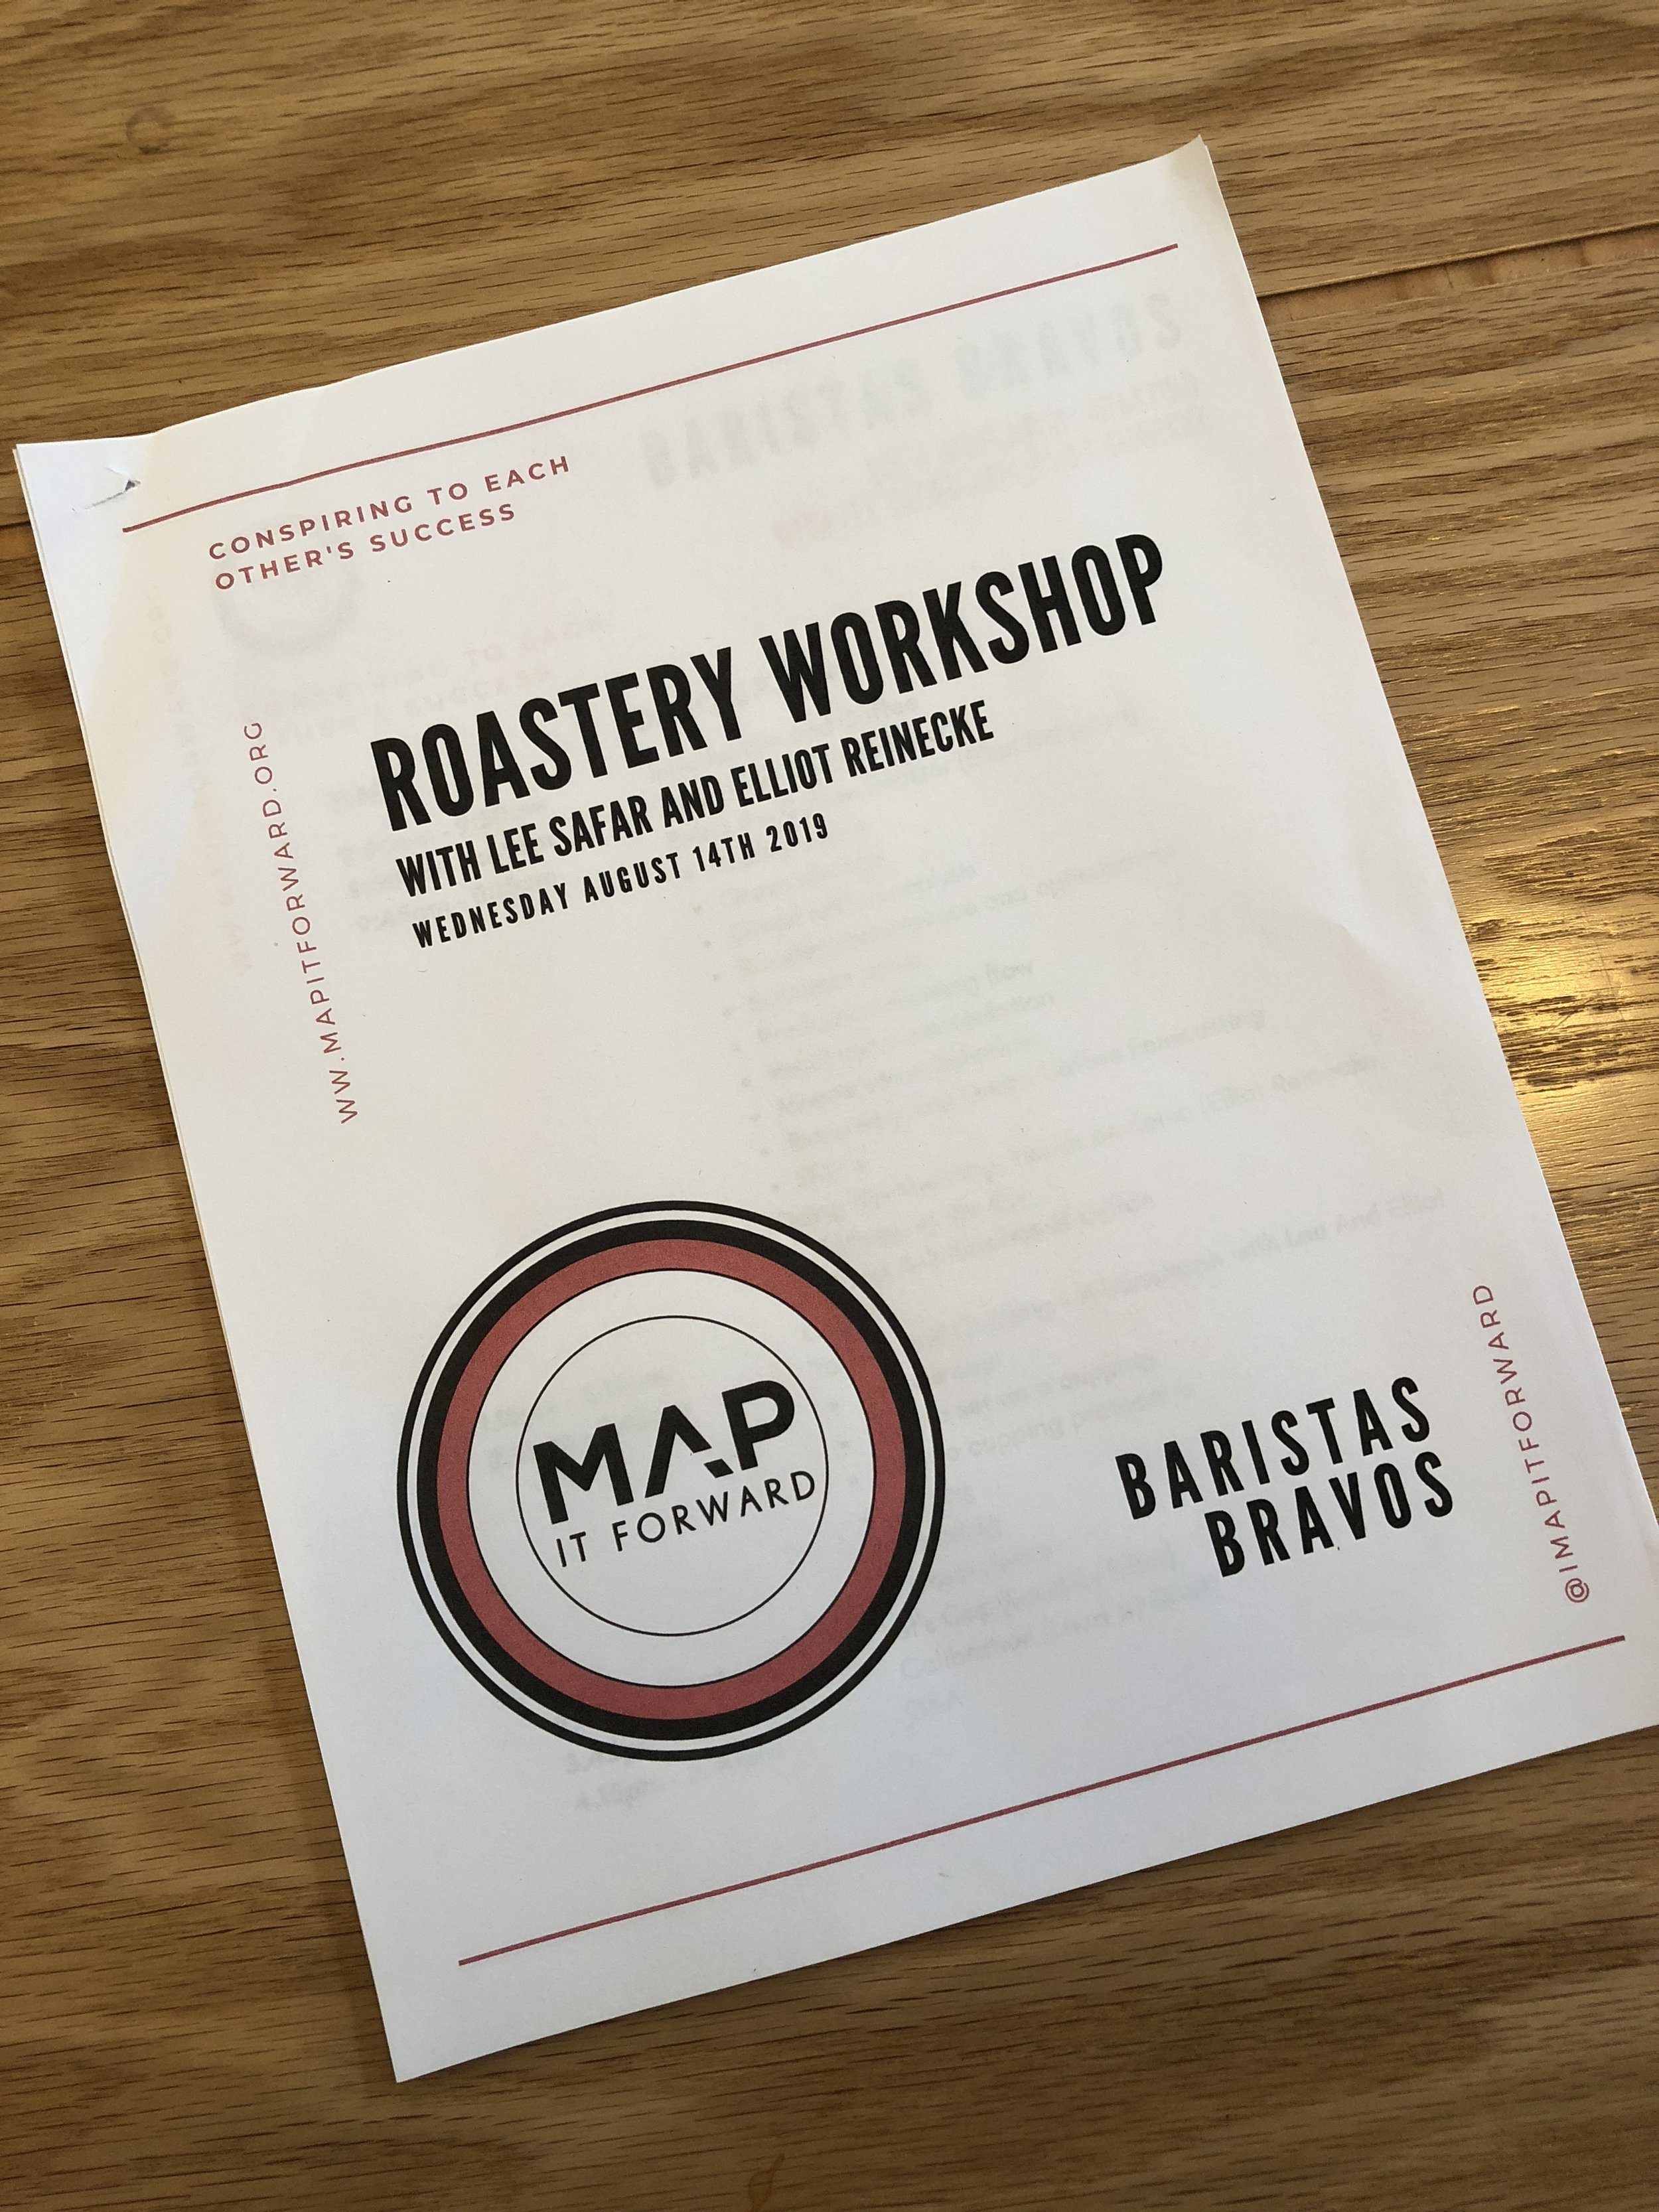 Roastery Workshop: Day 1 of a 3 day MAP IT FORWARD Intensive tailor made consultation program for Baristas Bravos in Tijuana, Mexico in August 2019.